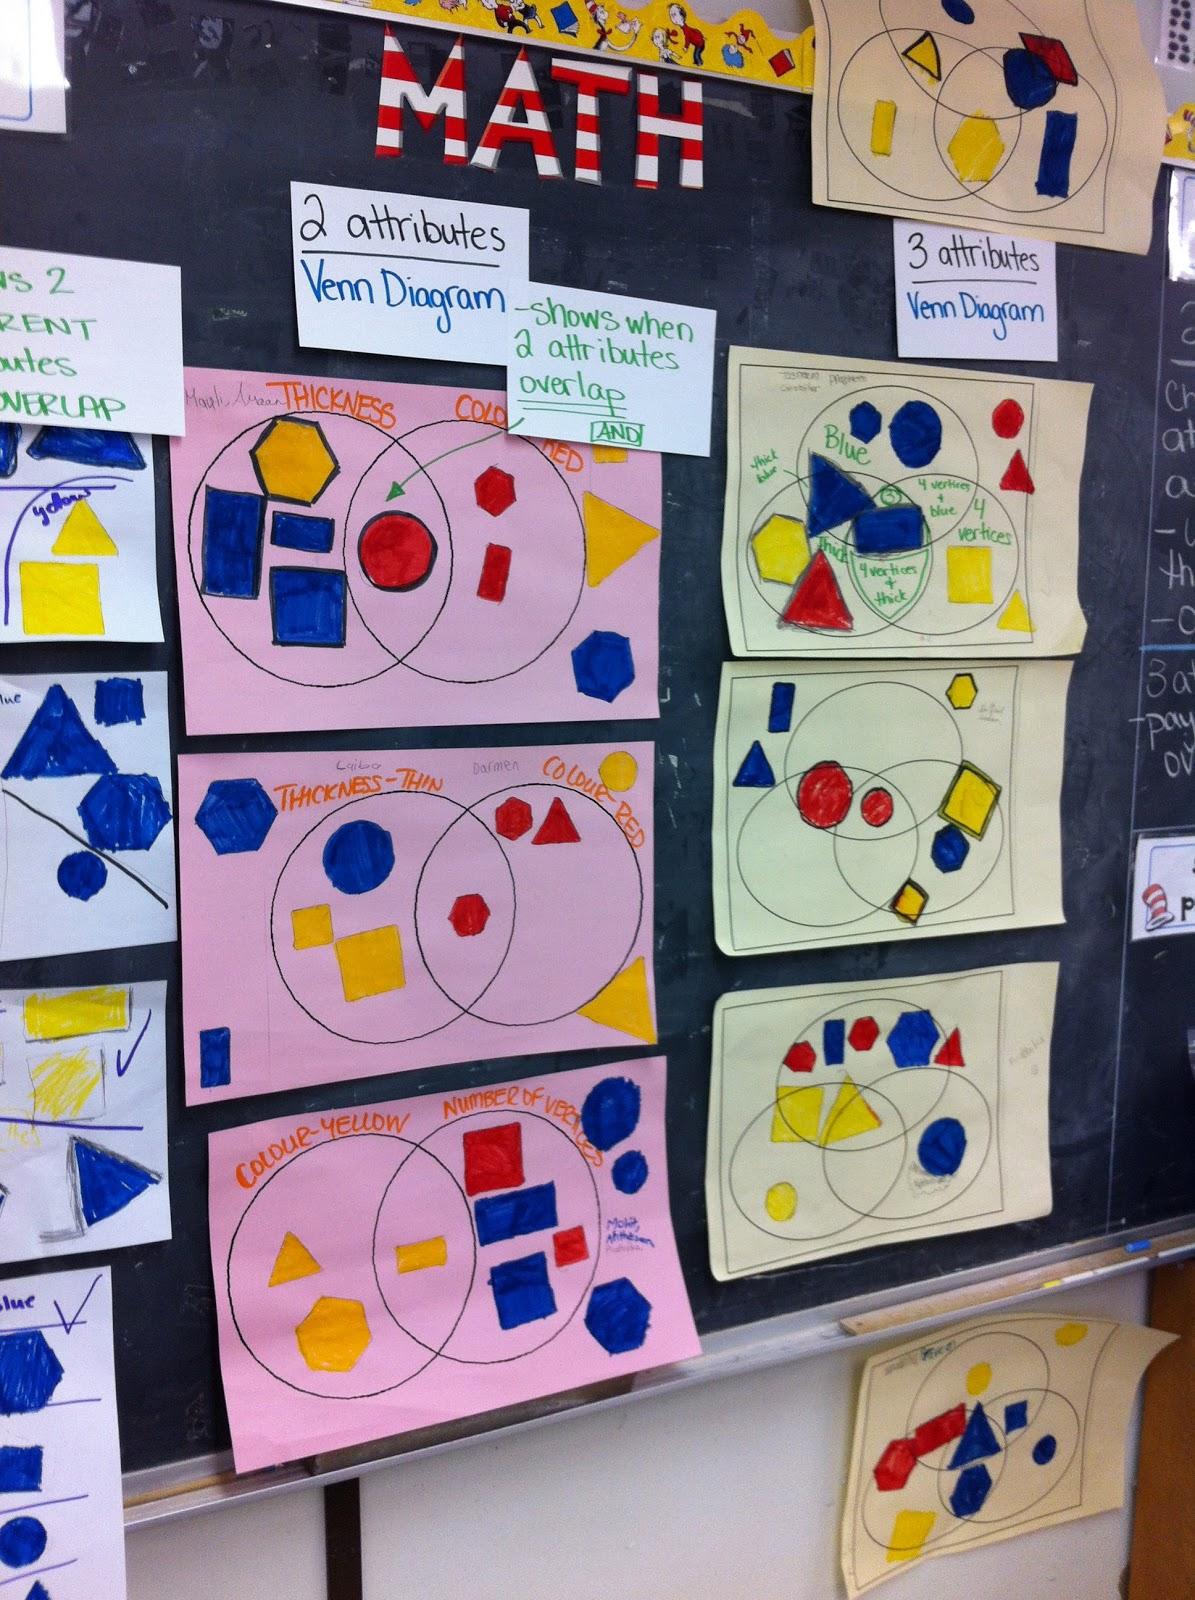 Sorting 3d Shapes Venn Diagram Wiring For Defy Gemini Oven Thinking Of Teaching By Two And Three Attributes